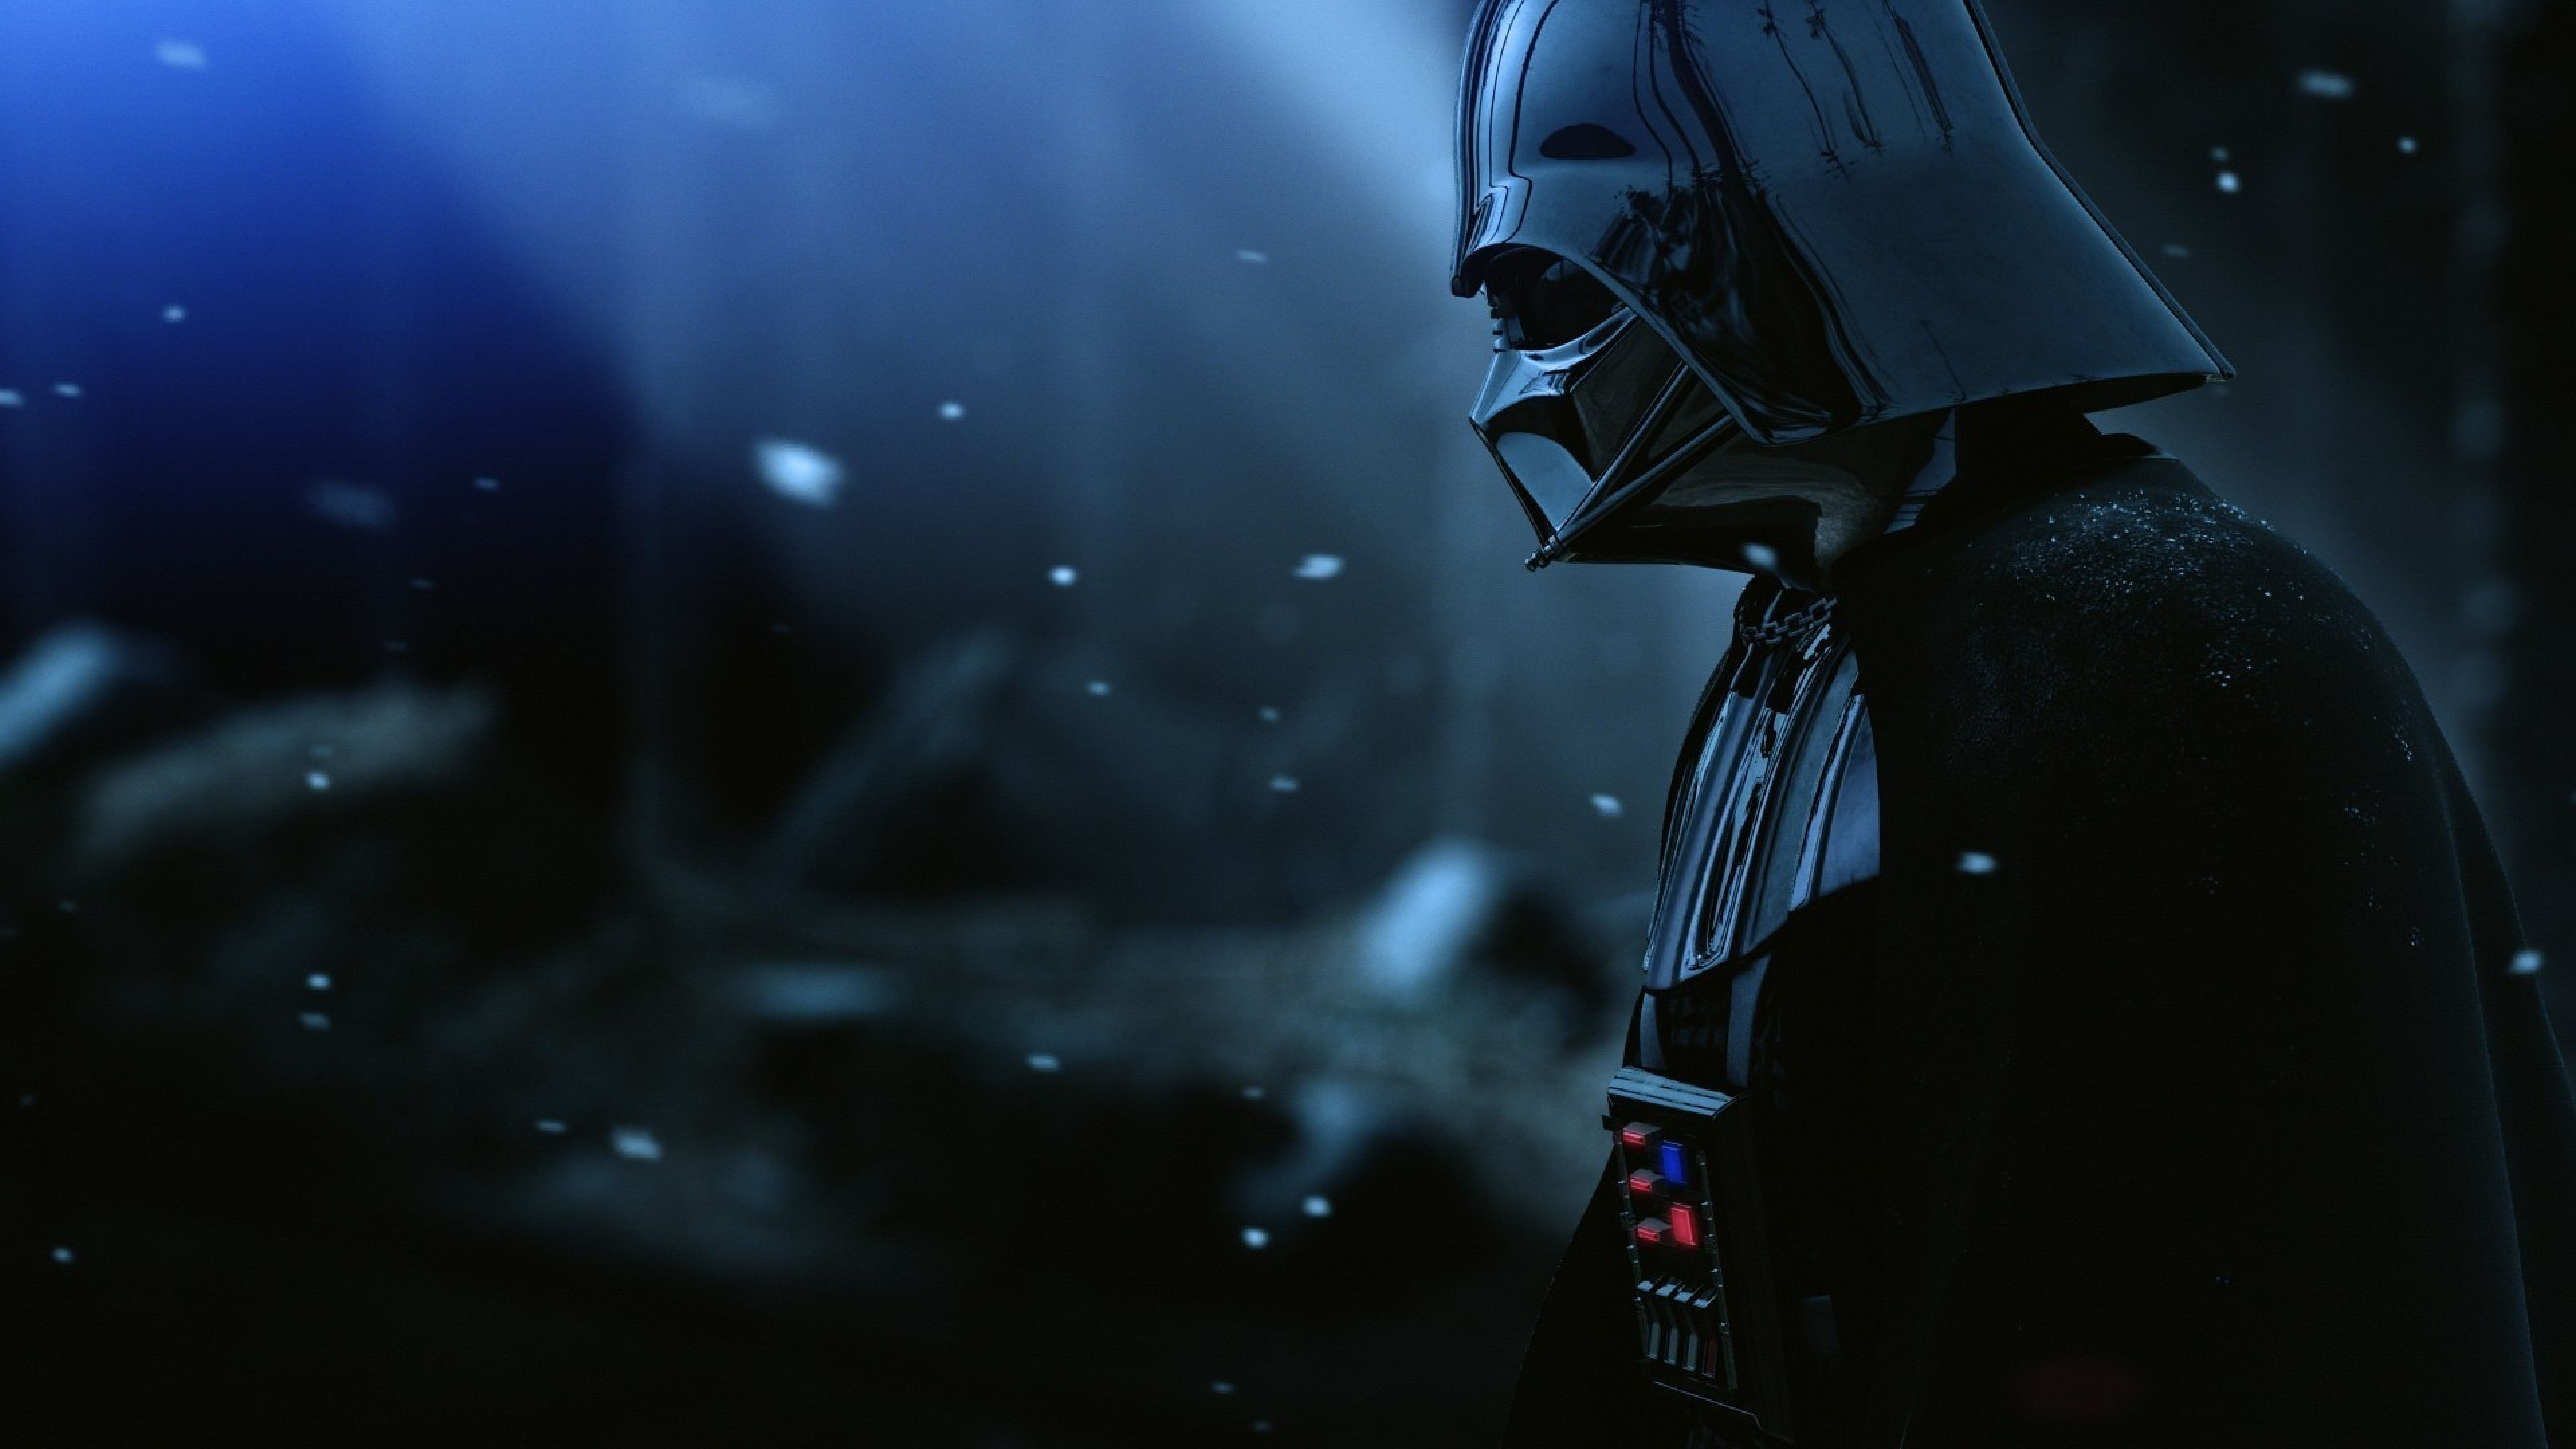 3840 X 2160 Star Wars Wallpapers Top Free 3840 X 2160 Star Wars Backgrounds Wallpaperaccess